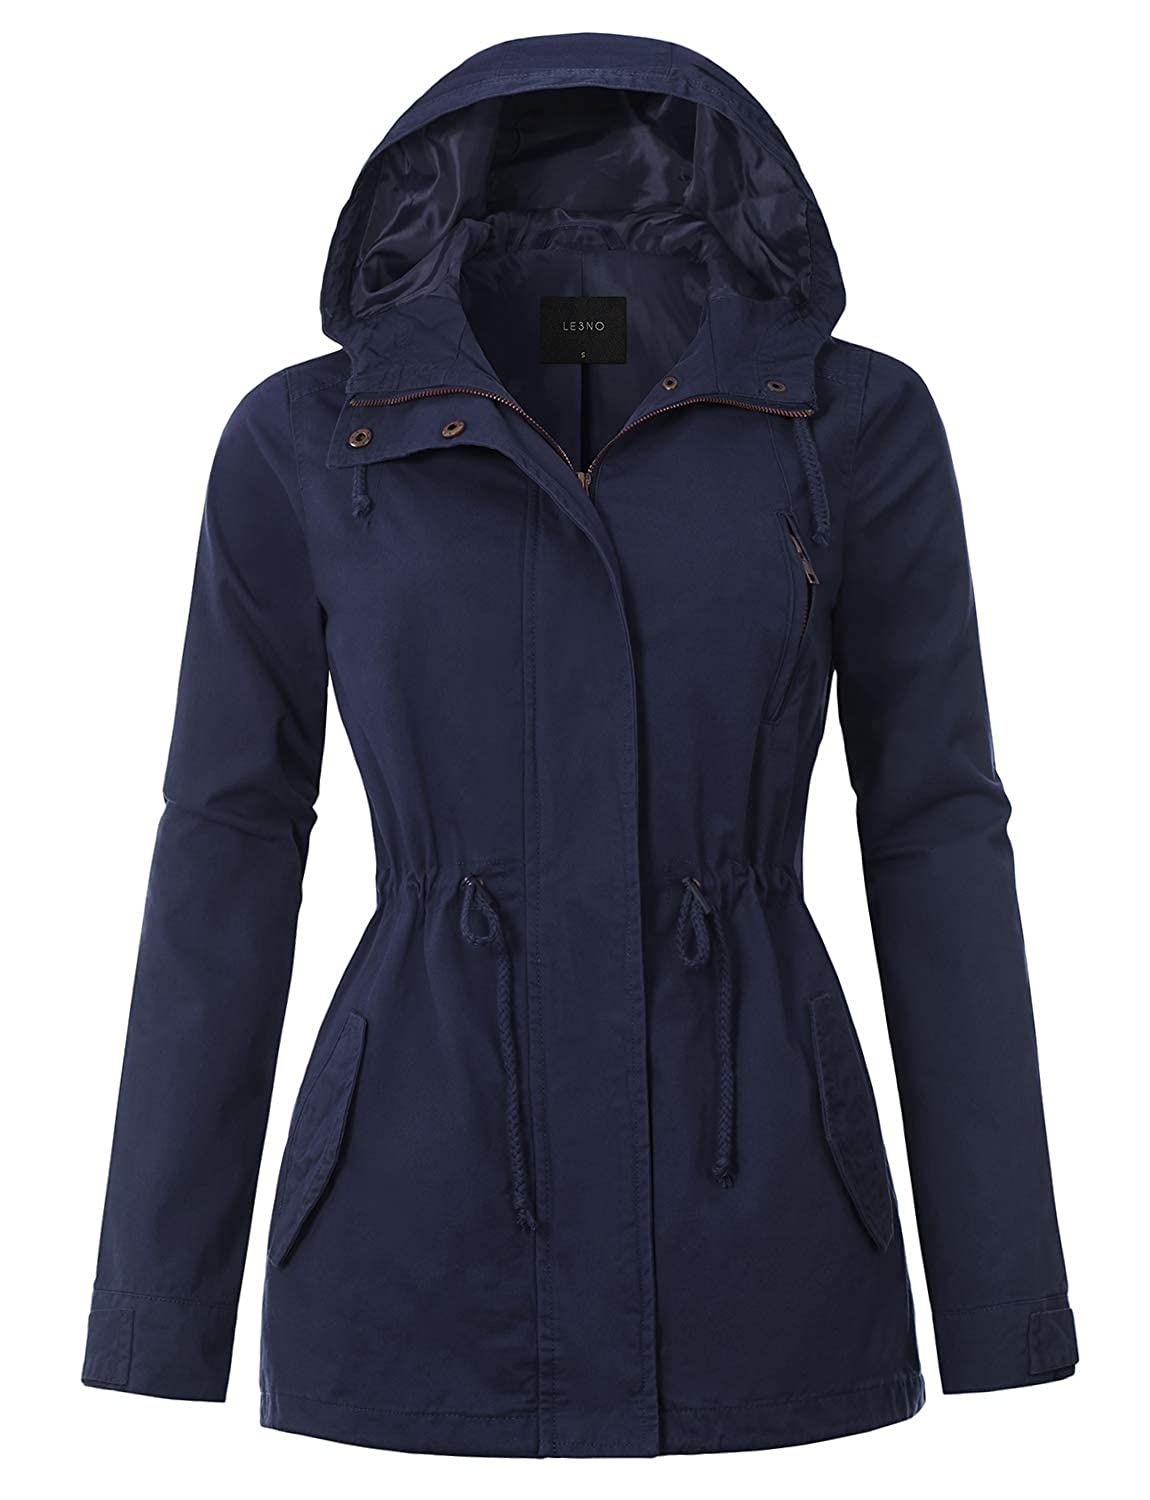 for S-3XL LE3NO Lightweight Casual Military Hooded Anoraks Safari Jacket with Drawstring